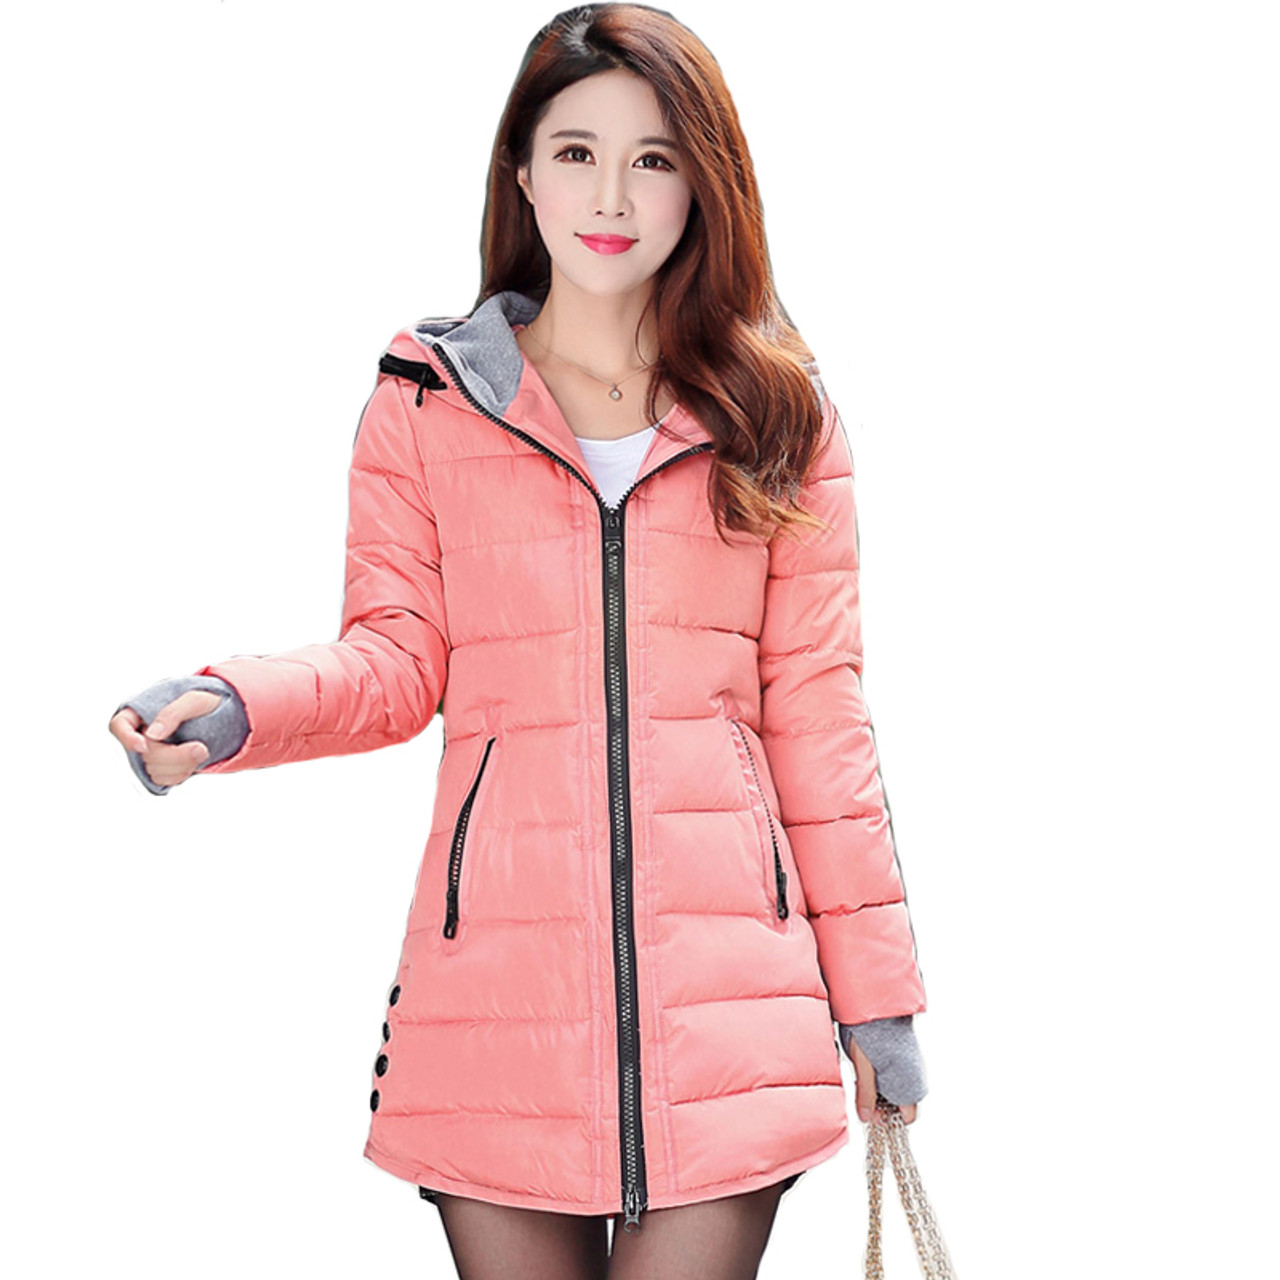 4ed69ff7a0a 2018 women winter hooded warm coat plus size candy color cotton padded  jacket female long parka womens wadded jaqueta feminina - OnshopDeals.Com